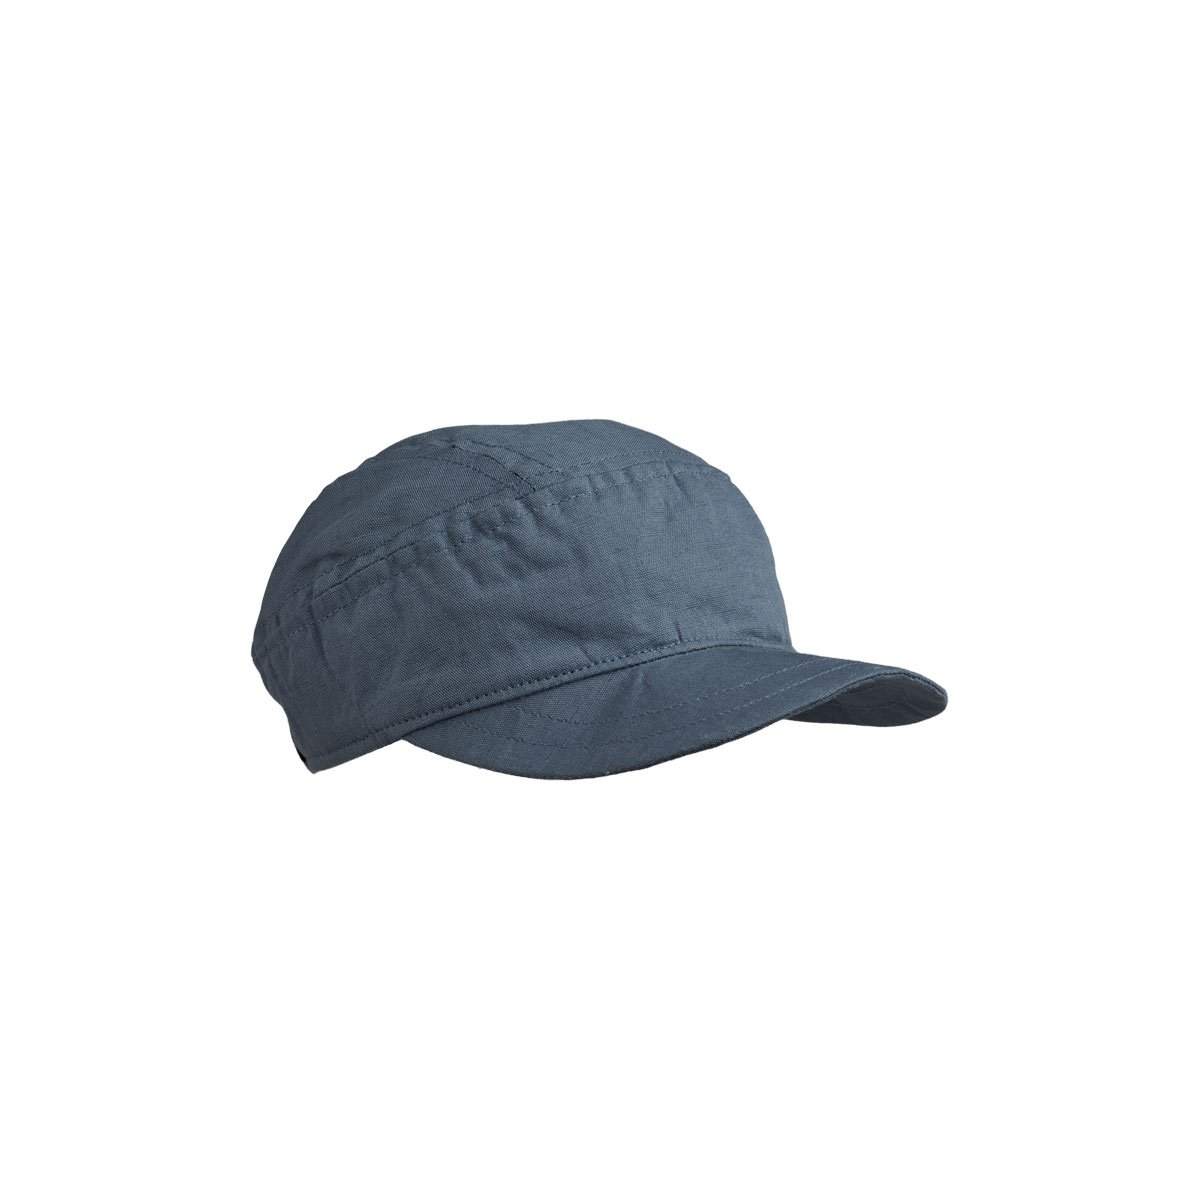 Christian soft cap - blue wave